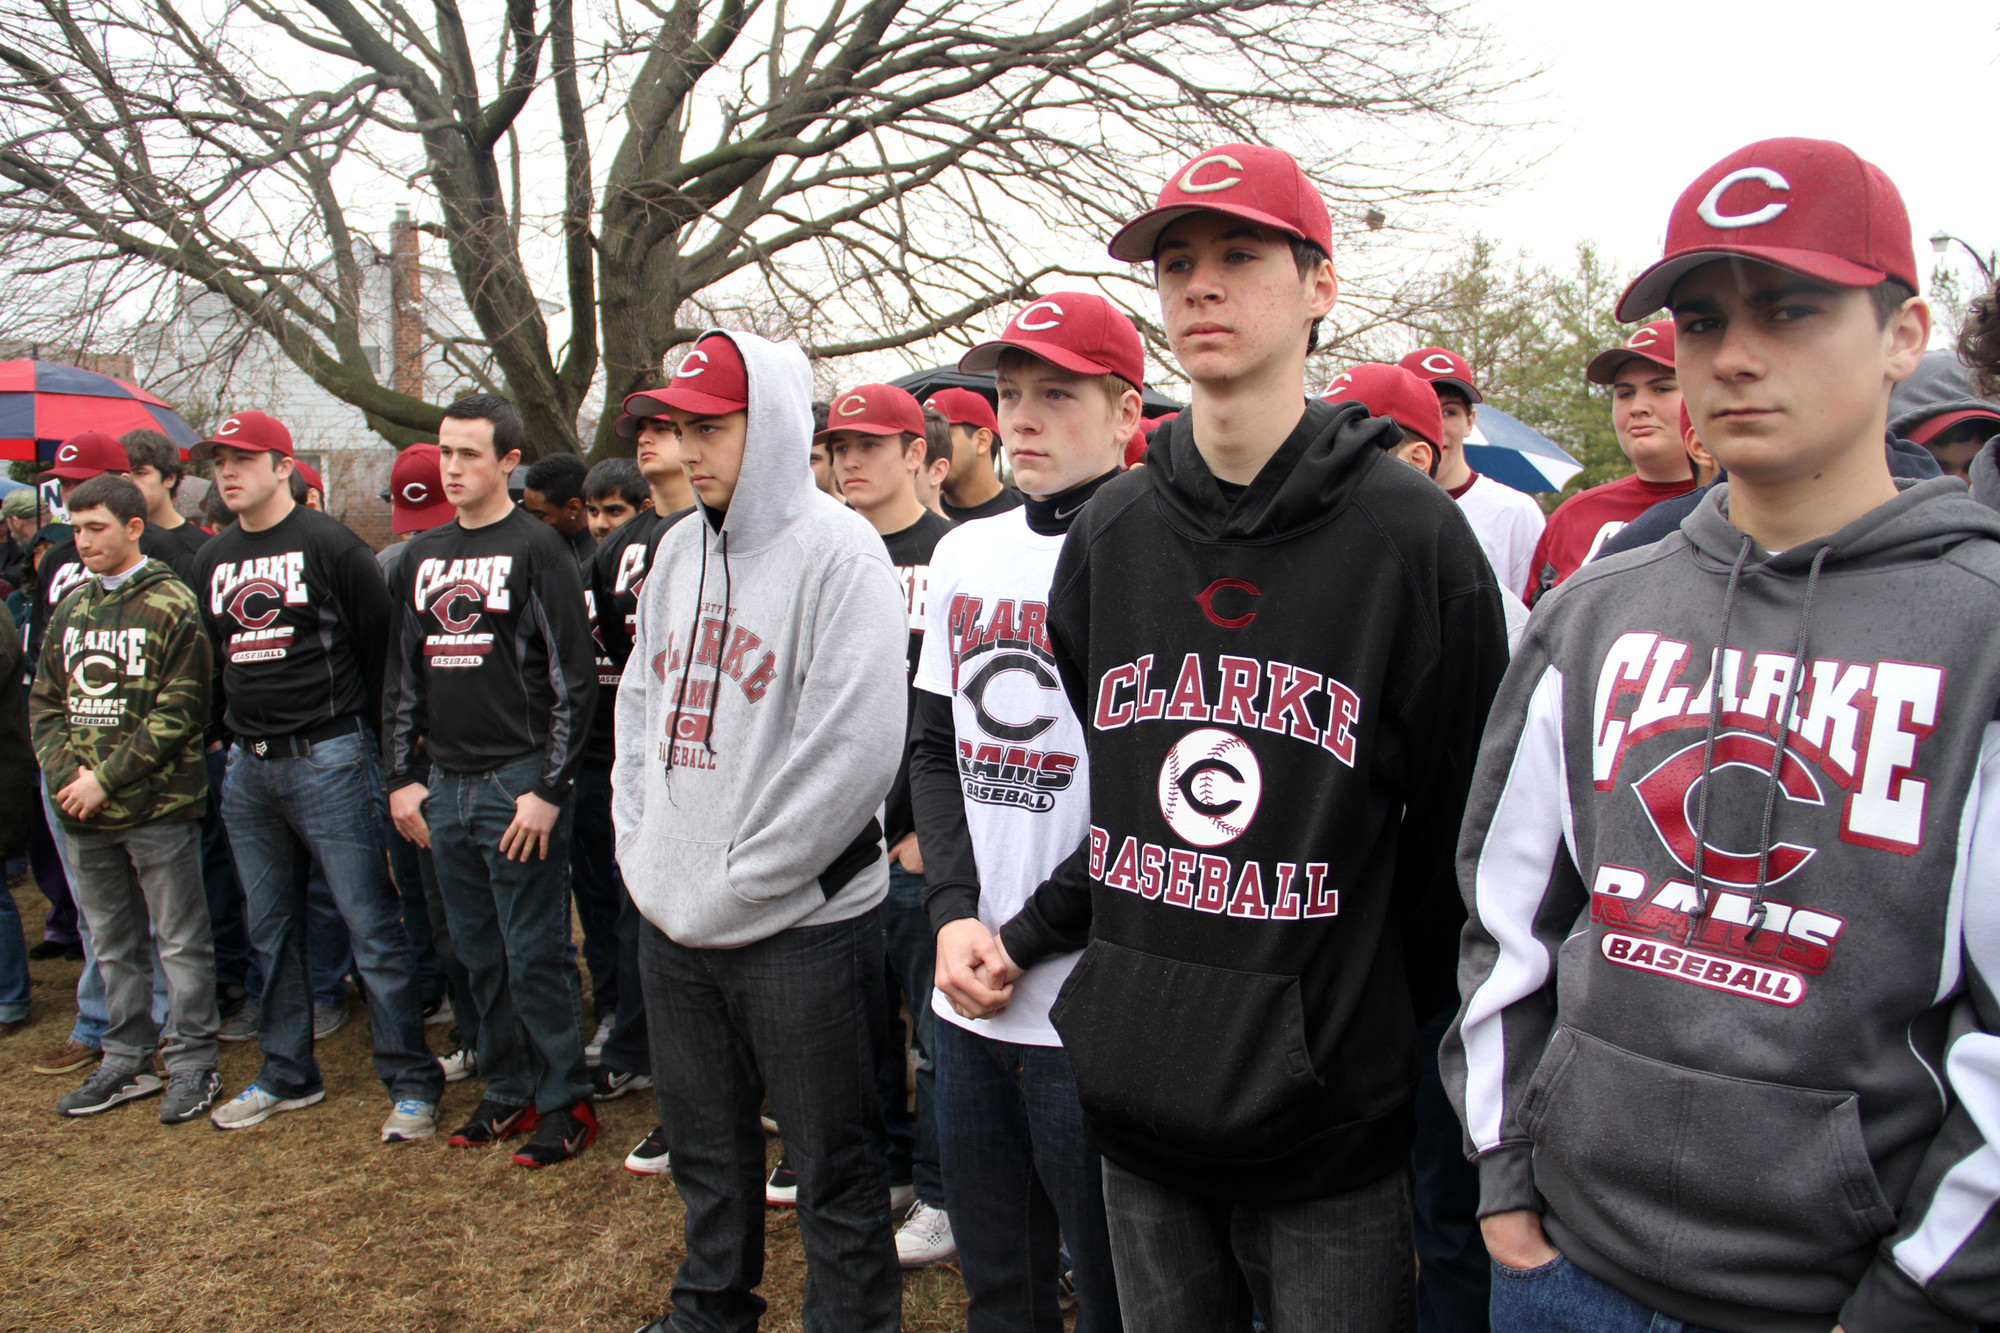 Clarke's varsity and junior varsity baseball teams attended the ceremony to show their support. Pitone's youngest son, Kyle, is a JV player.